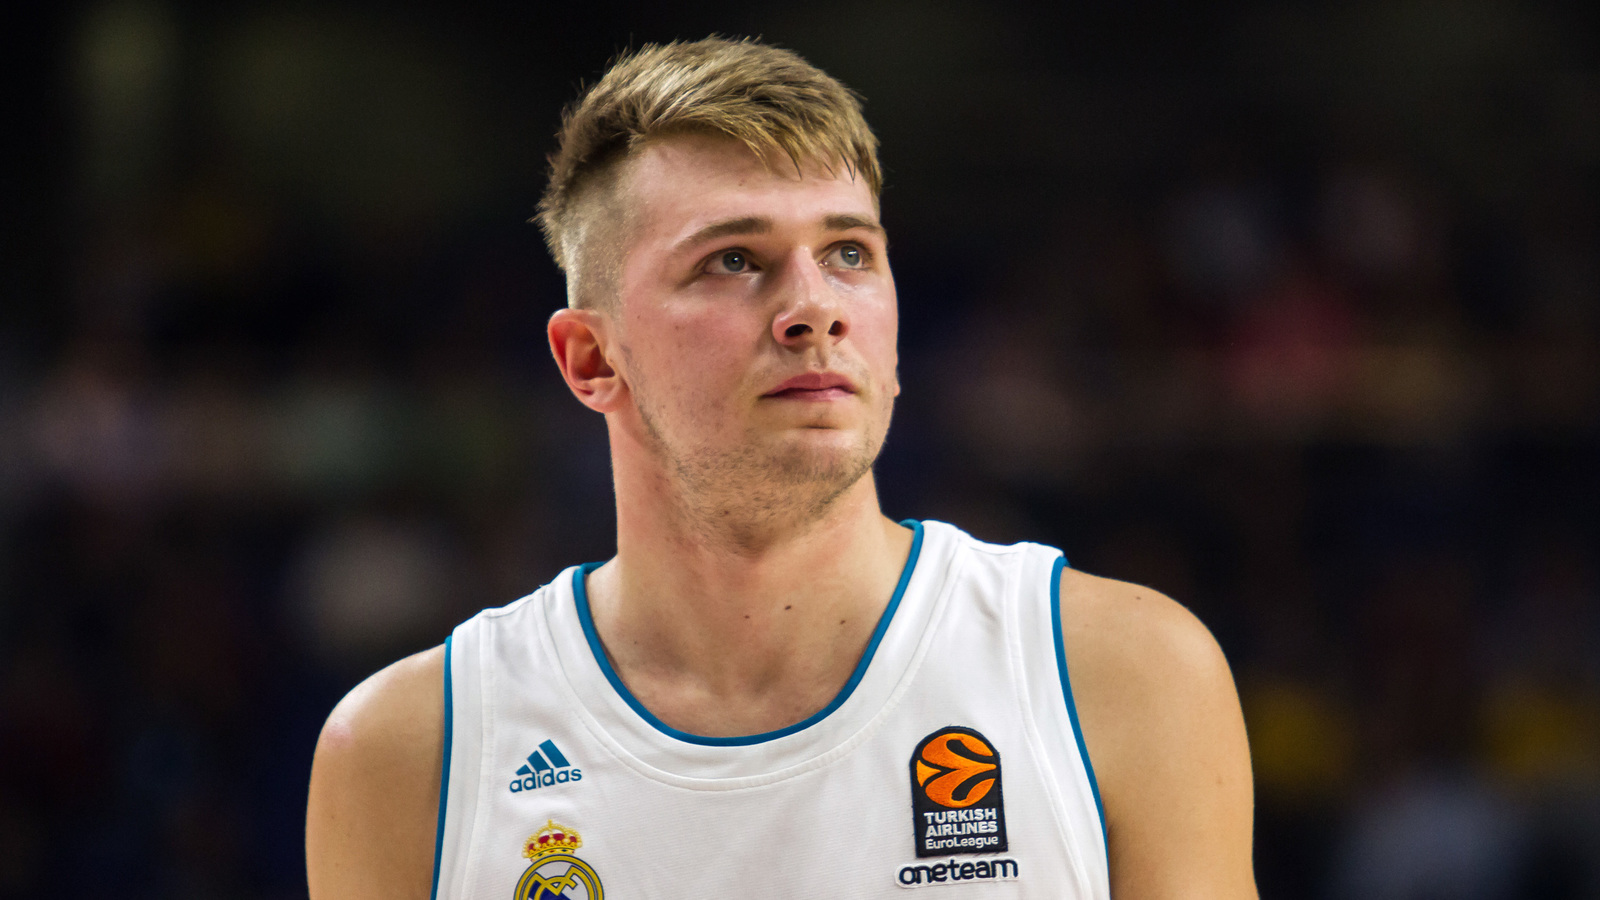 Luka Doncic mom Mirjam Poterbin is a former model